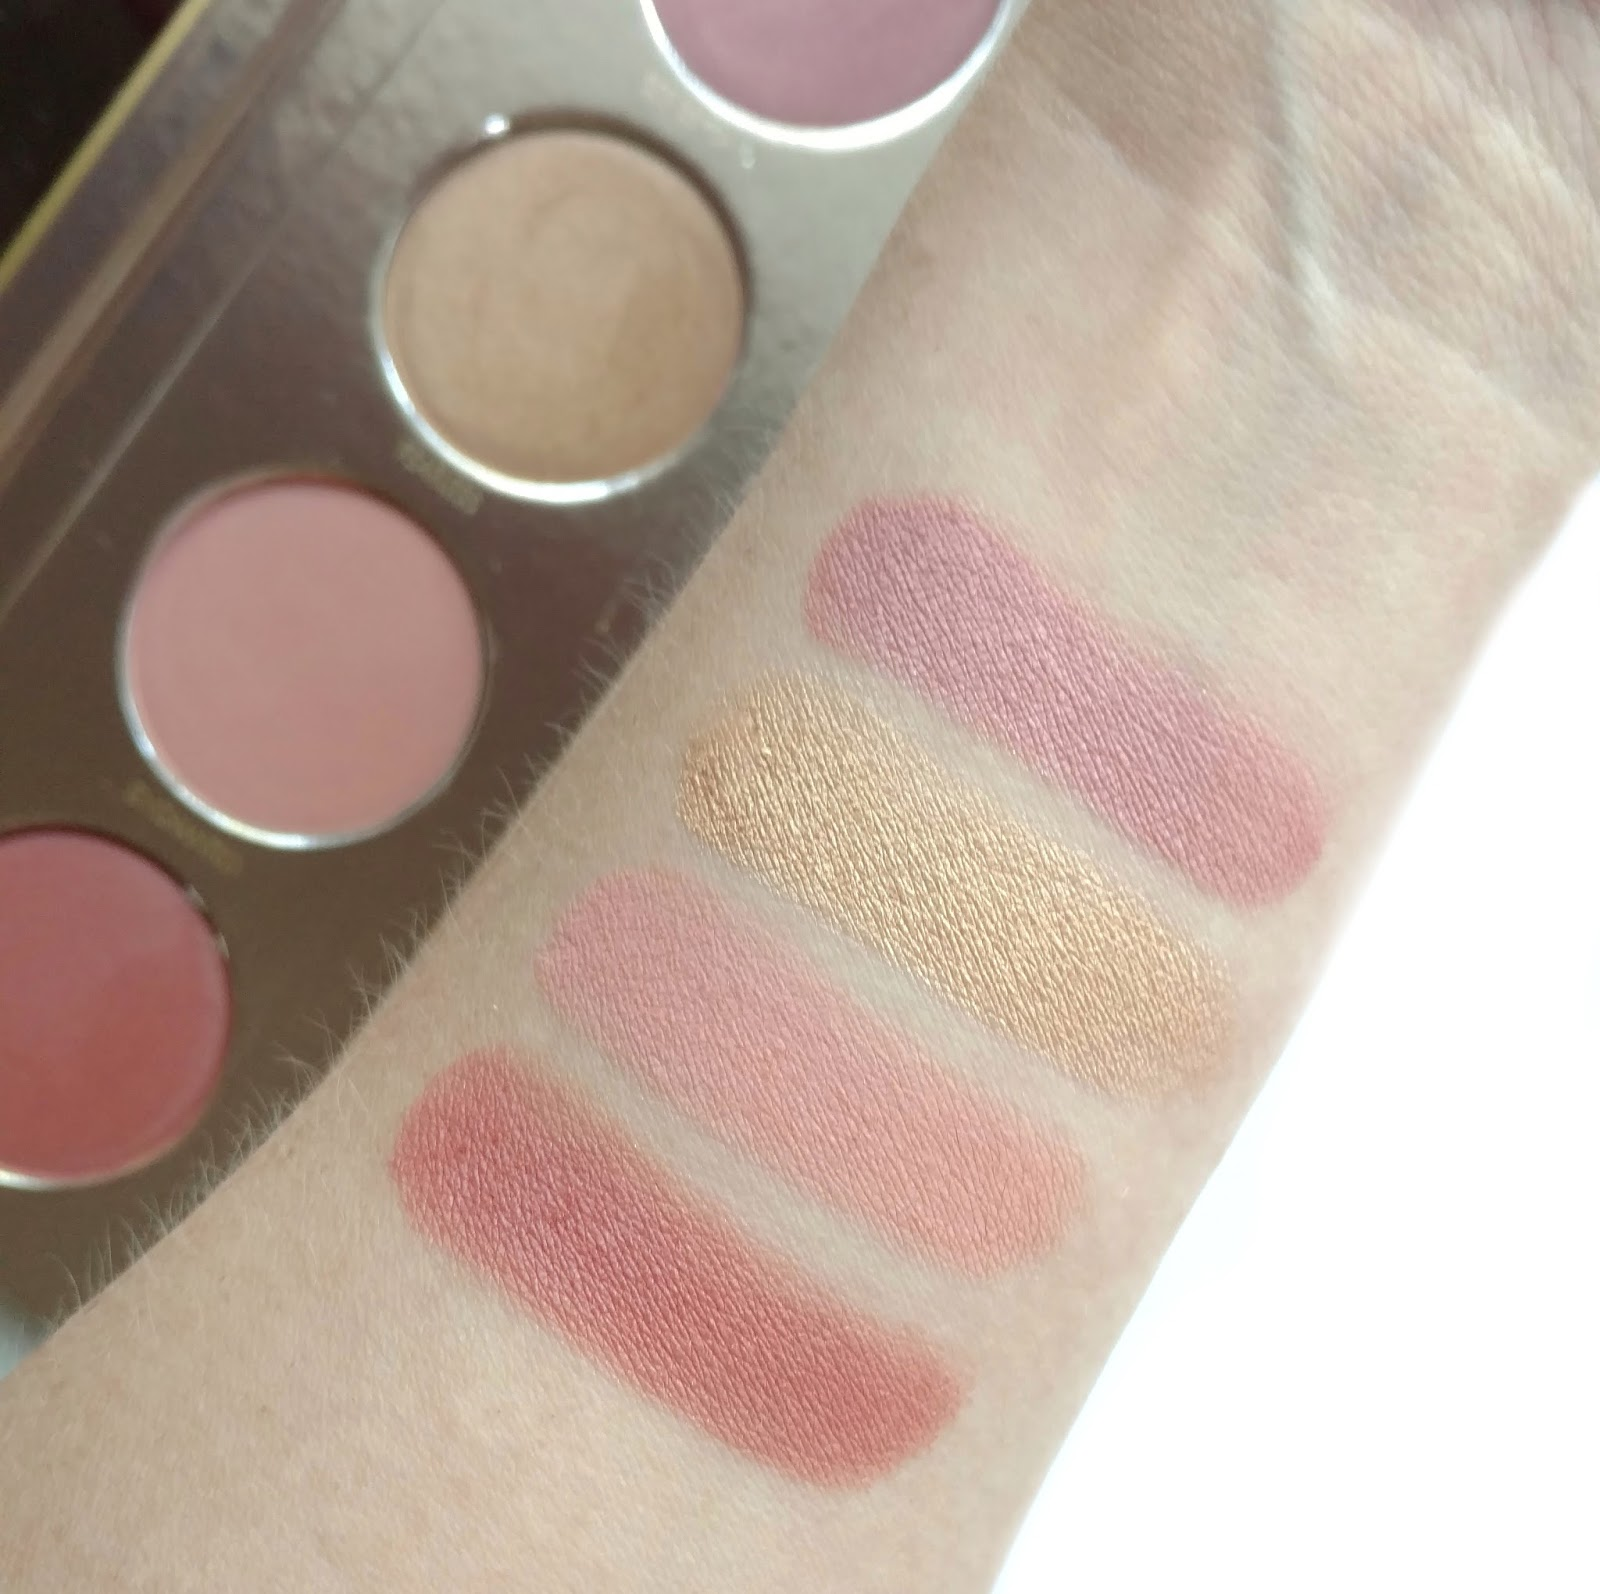 Lorac Beauty and the Beast Cheek Palette Swatches